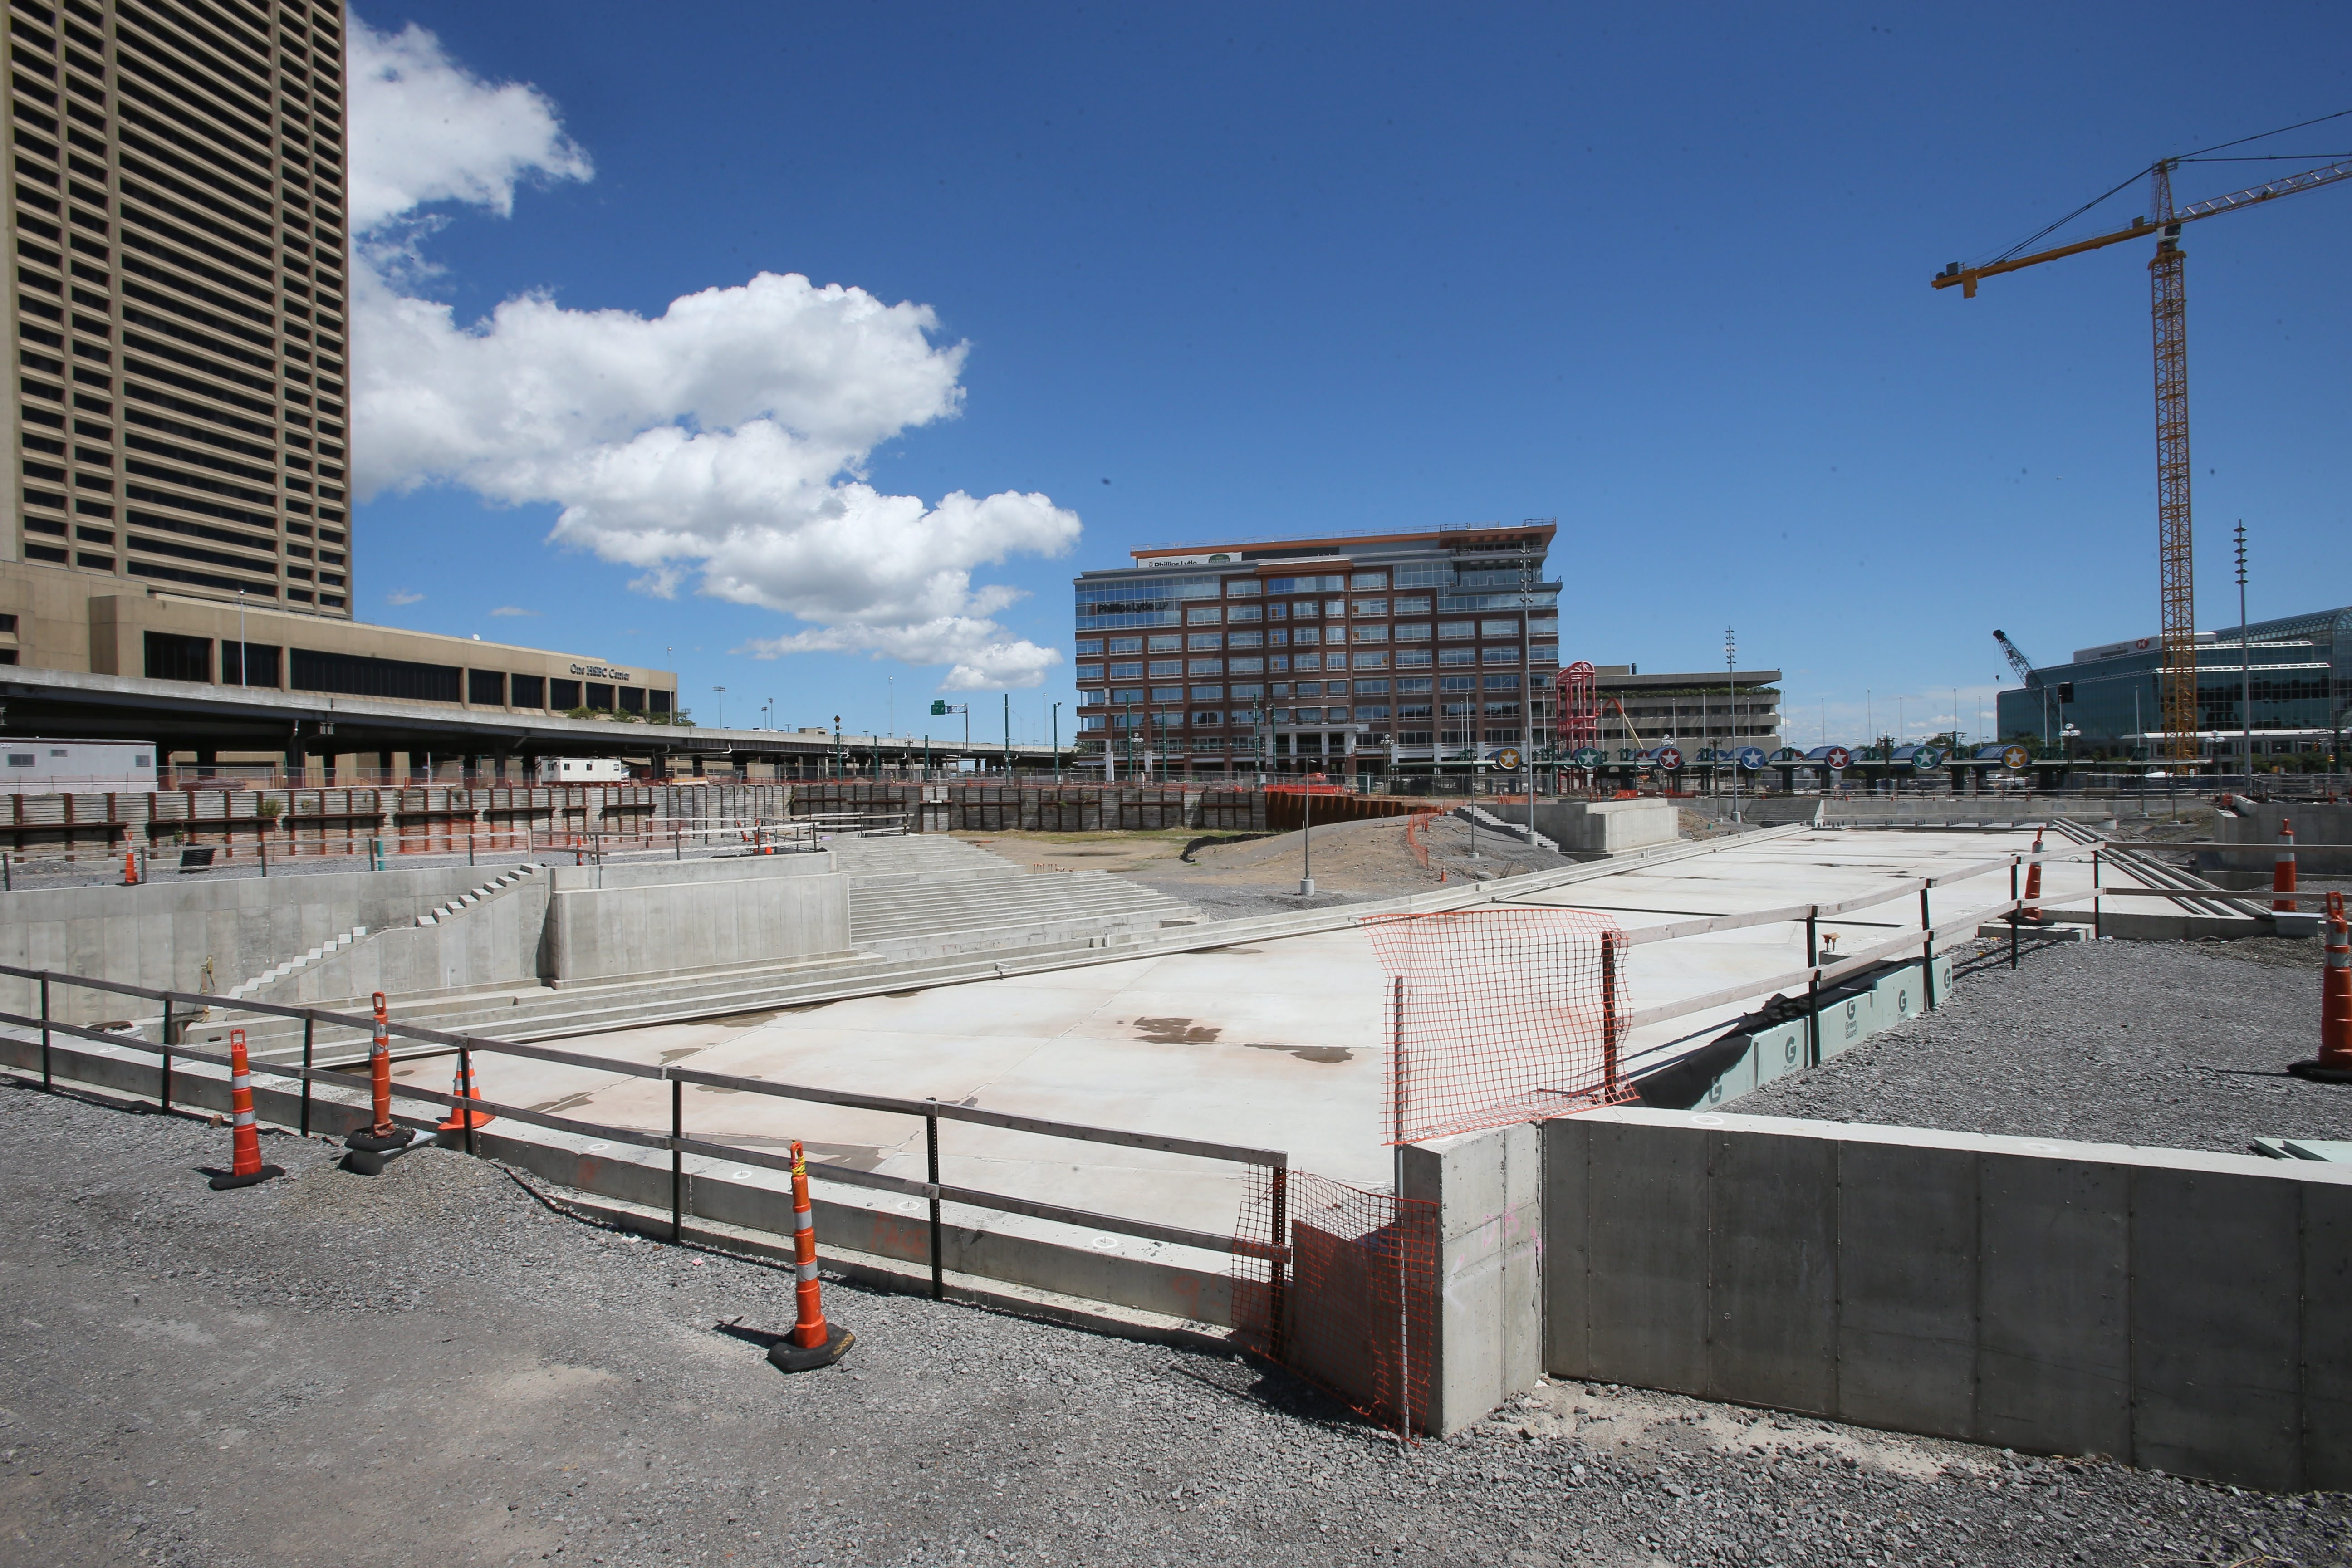 The throwback canals near Buffalo's waterfront will serve as reflecting pools in the warmer weather and ice skating rinks in winter.